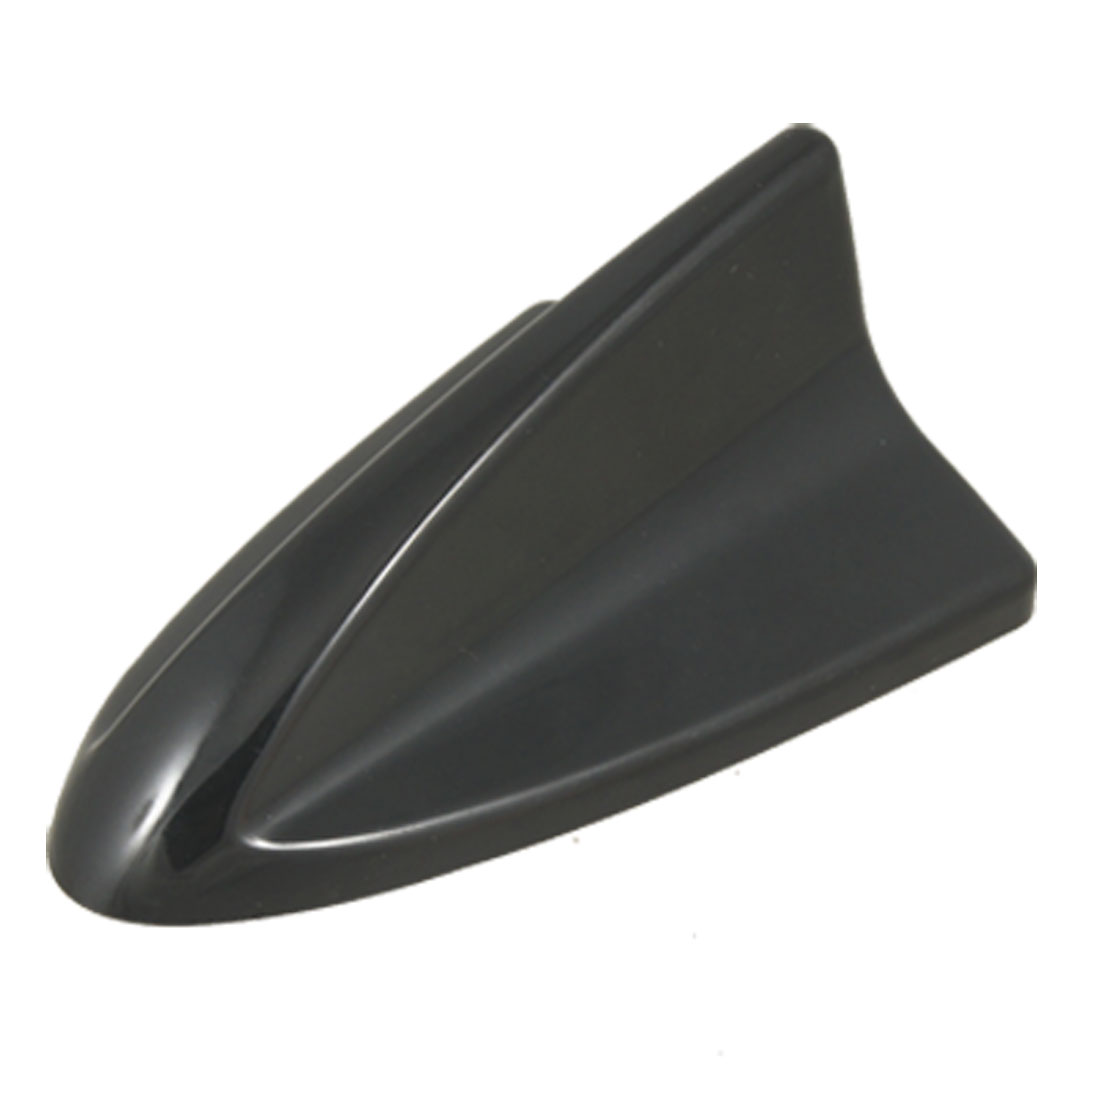 Plastic Shark Fin Shaped Decorative Antenna Ornament for Car Exterior